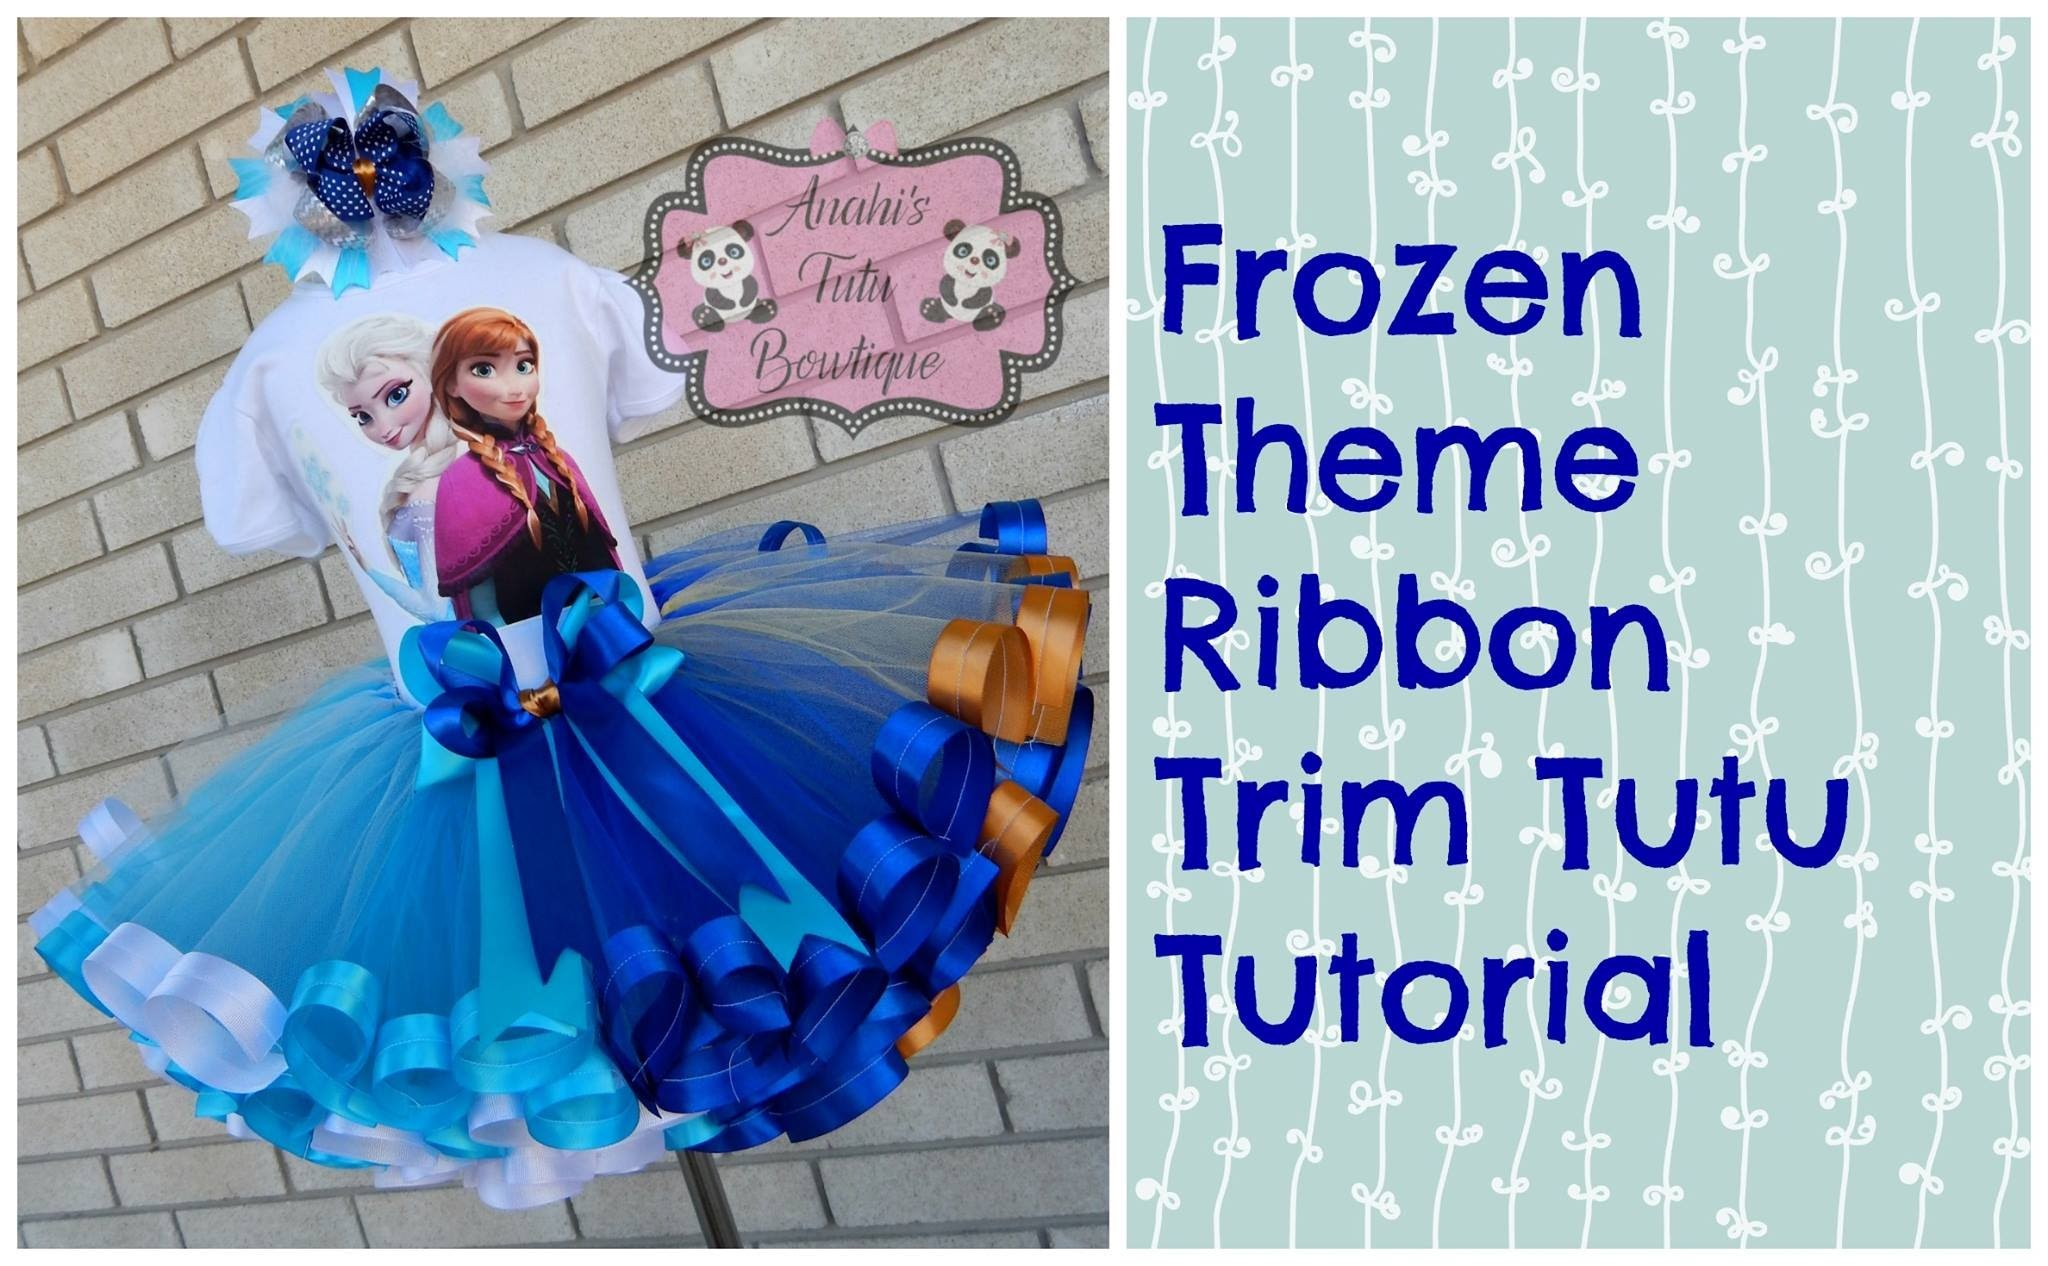 HOW TO: Make a Frozen Theme Ribbon Trim Tutu Tutorial Walk Through by Anahi's Tutu Bowtique